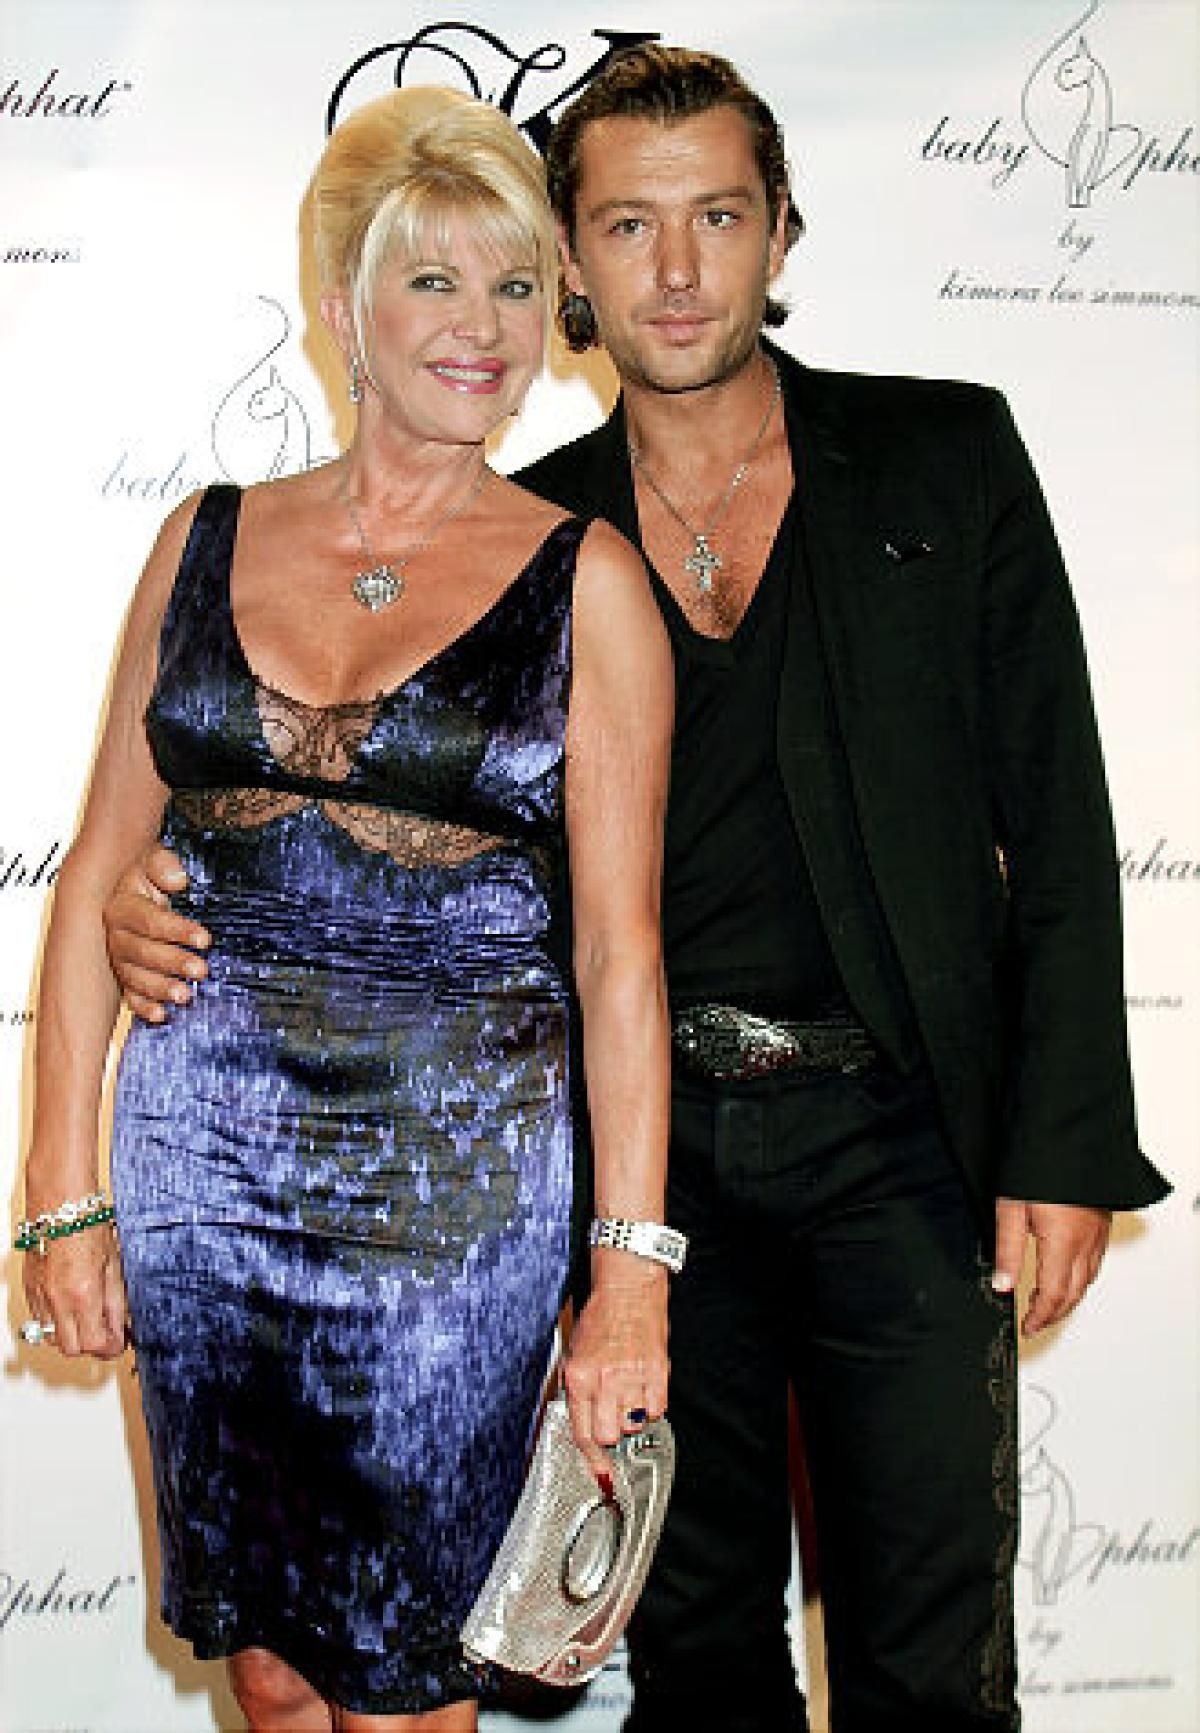 Pin On Celebrity Cougar And Cub Couples